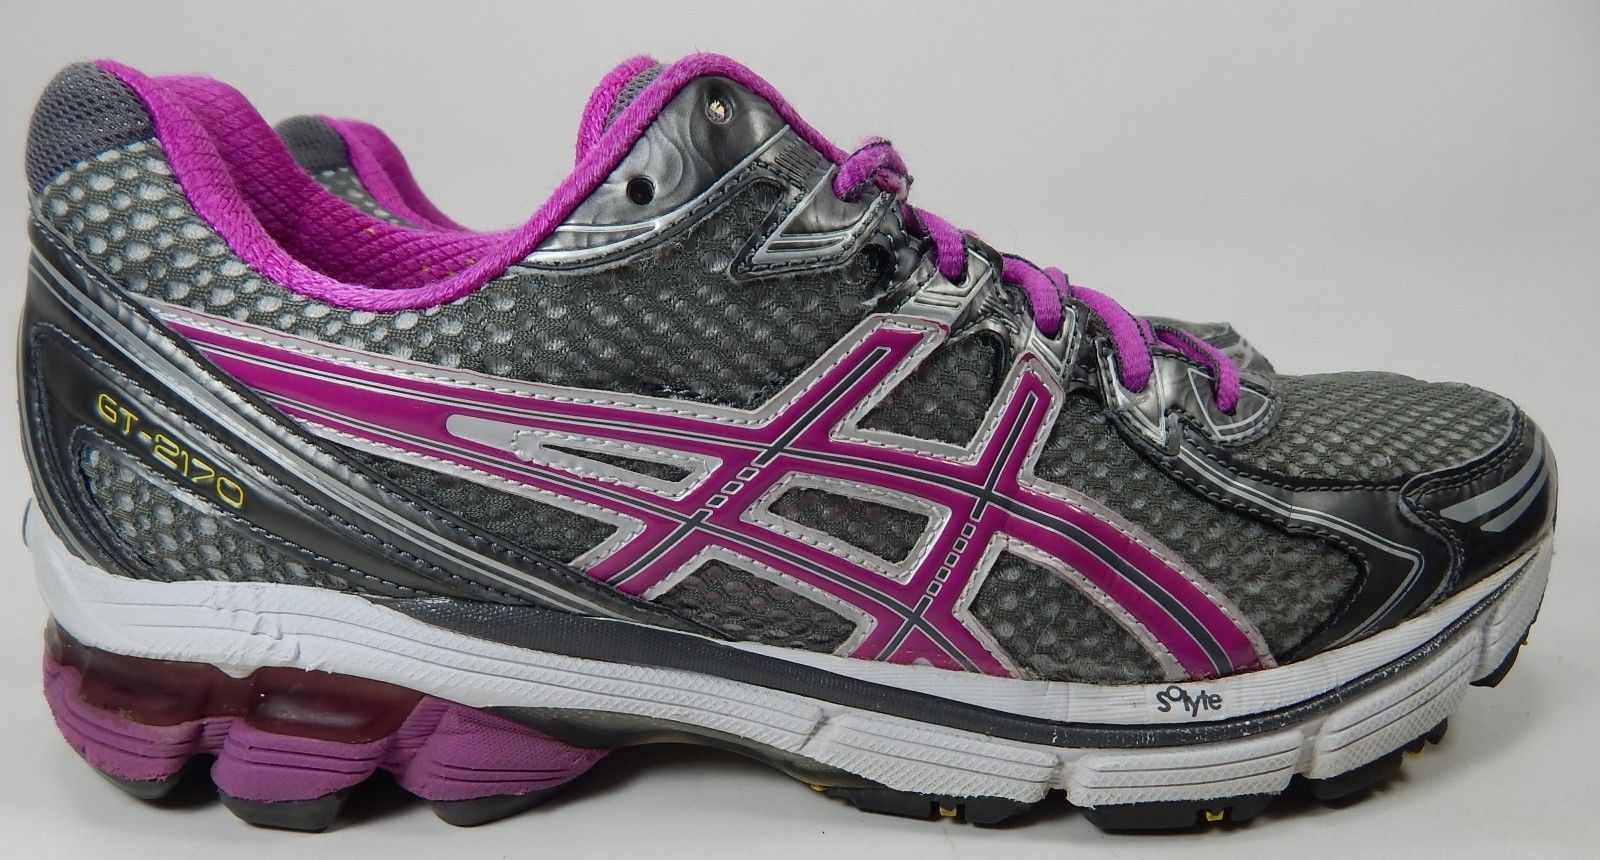 Asics GT 2170 Size US 10 M (B) EU 42 Women's Running Shoes Gray Purple T256N